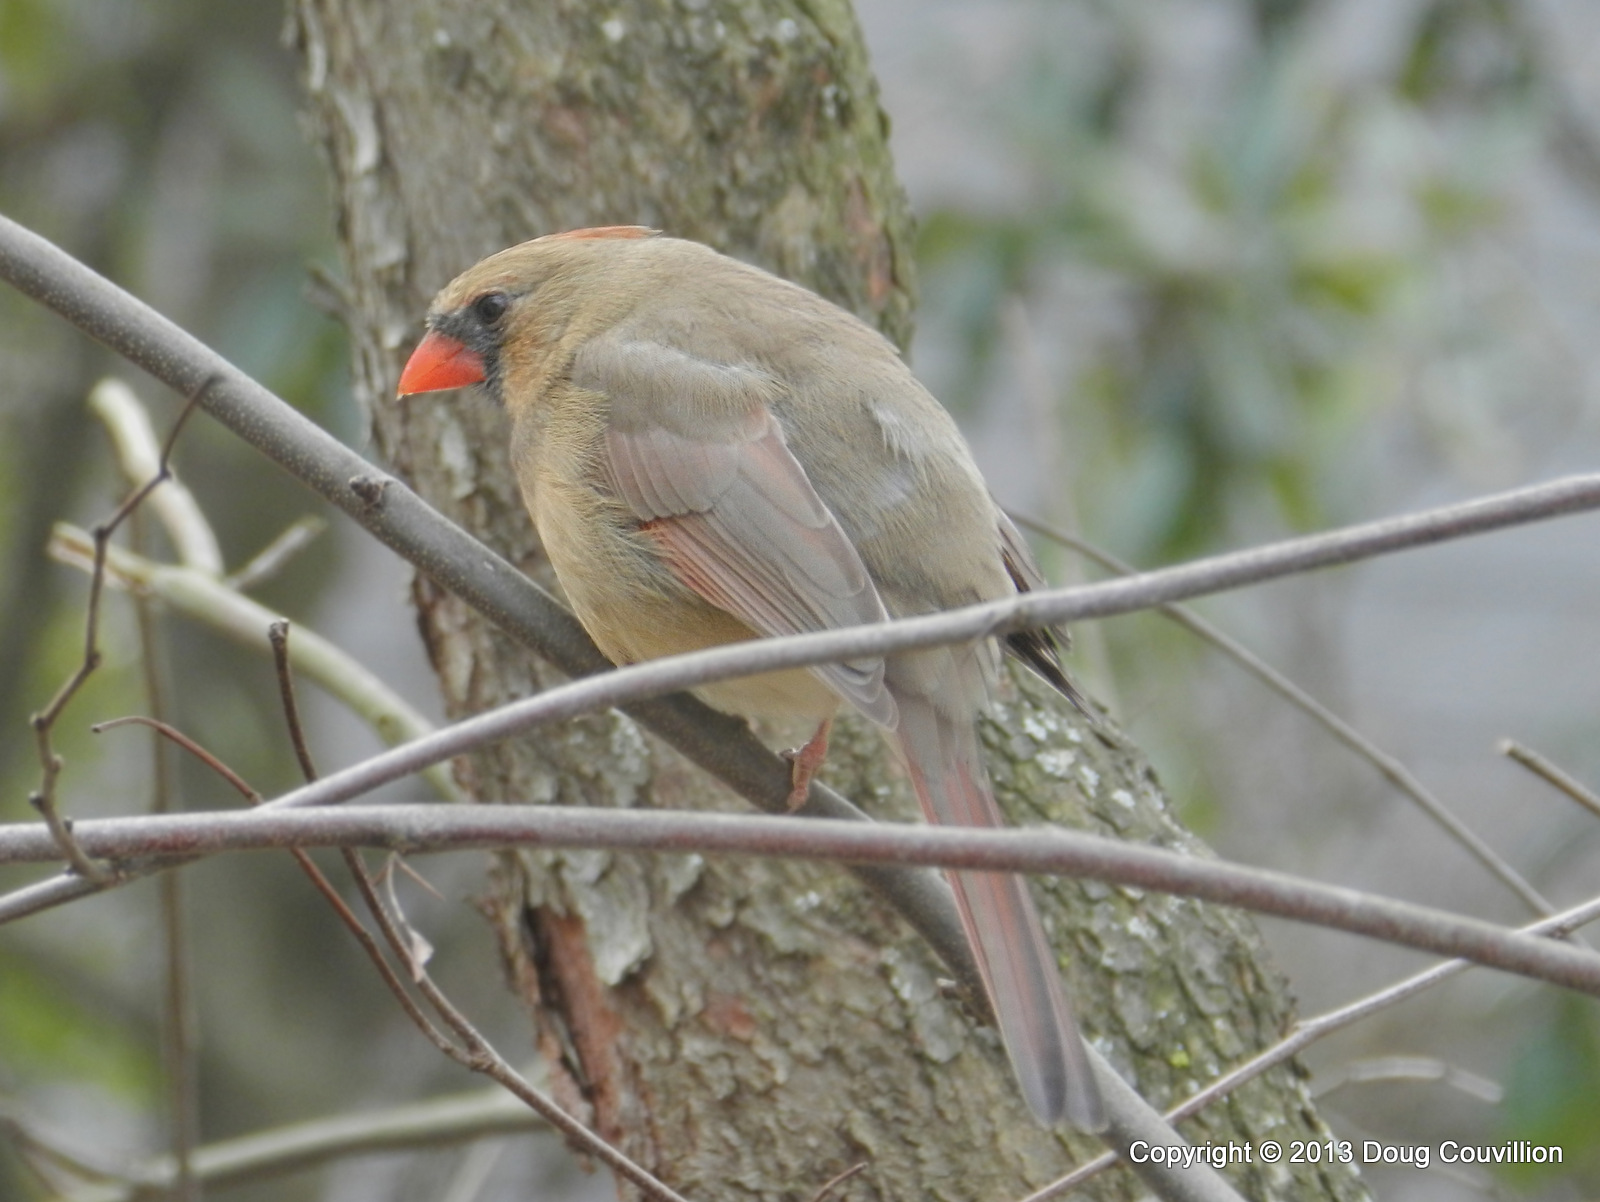 photograph of a female cardinal perched in a tree